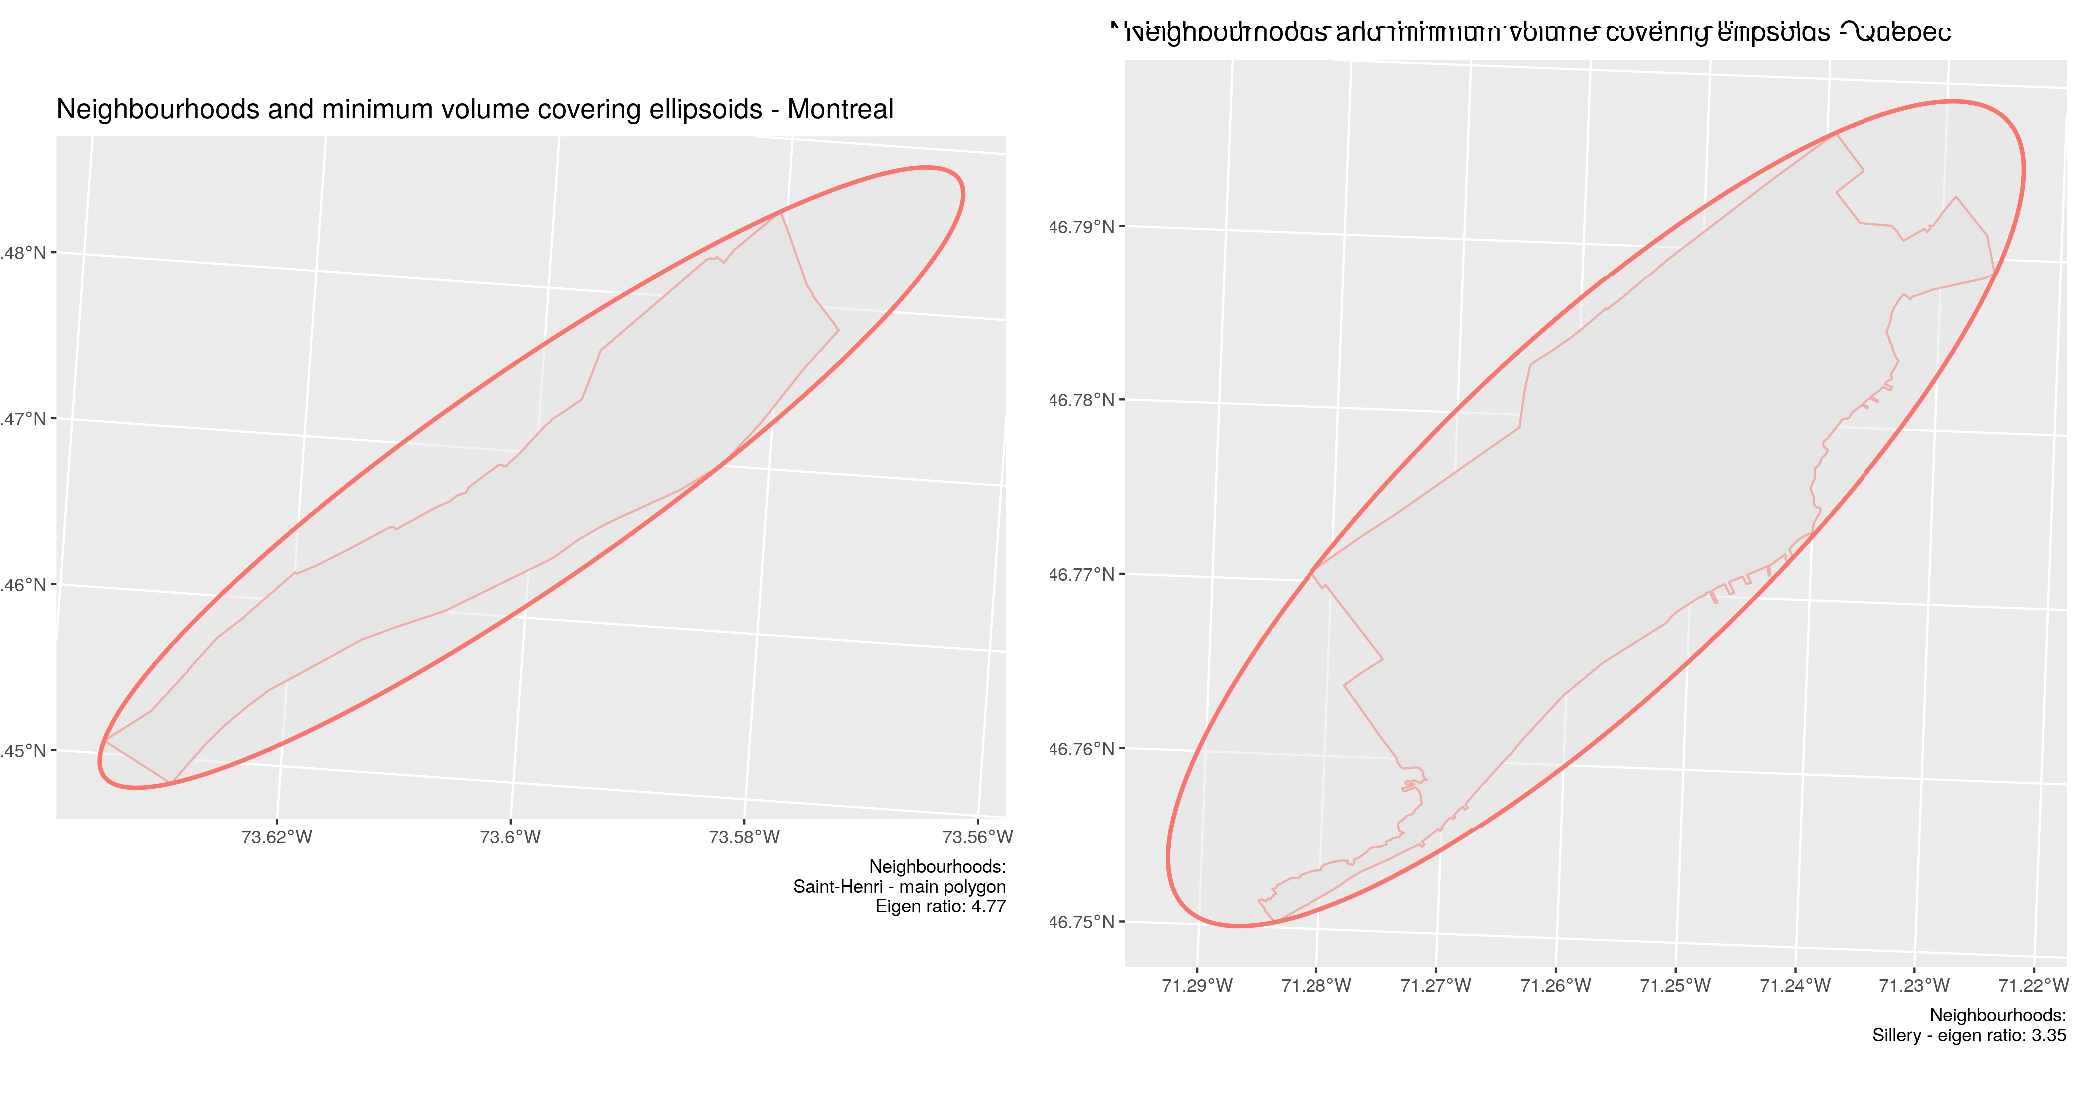 Most elongated neighbourhoods for Montreal: Saint-Henri (left) and Quebec City - Sillery (right)